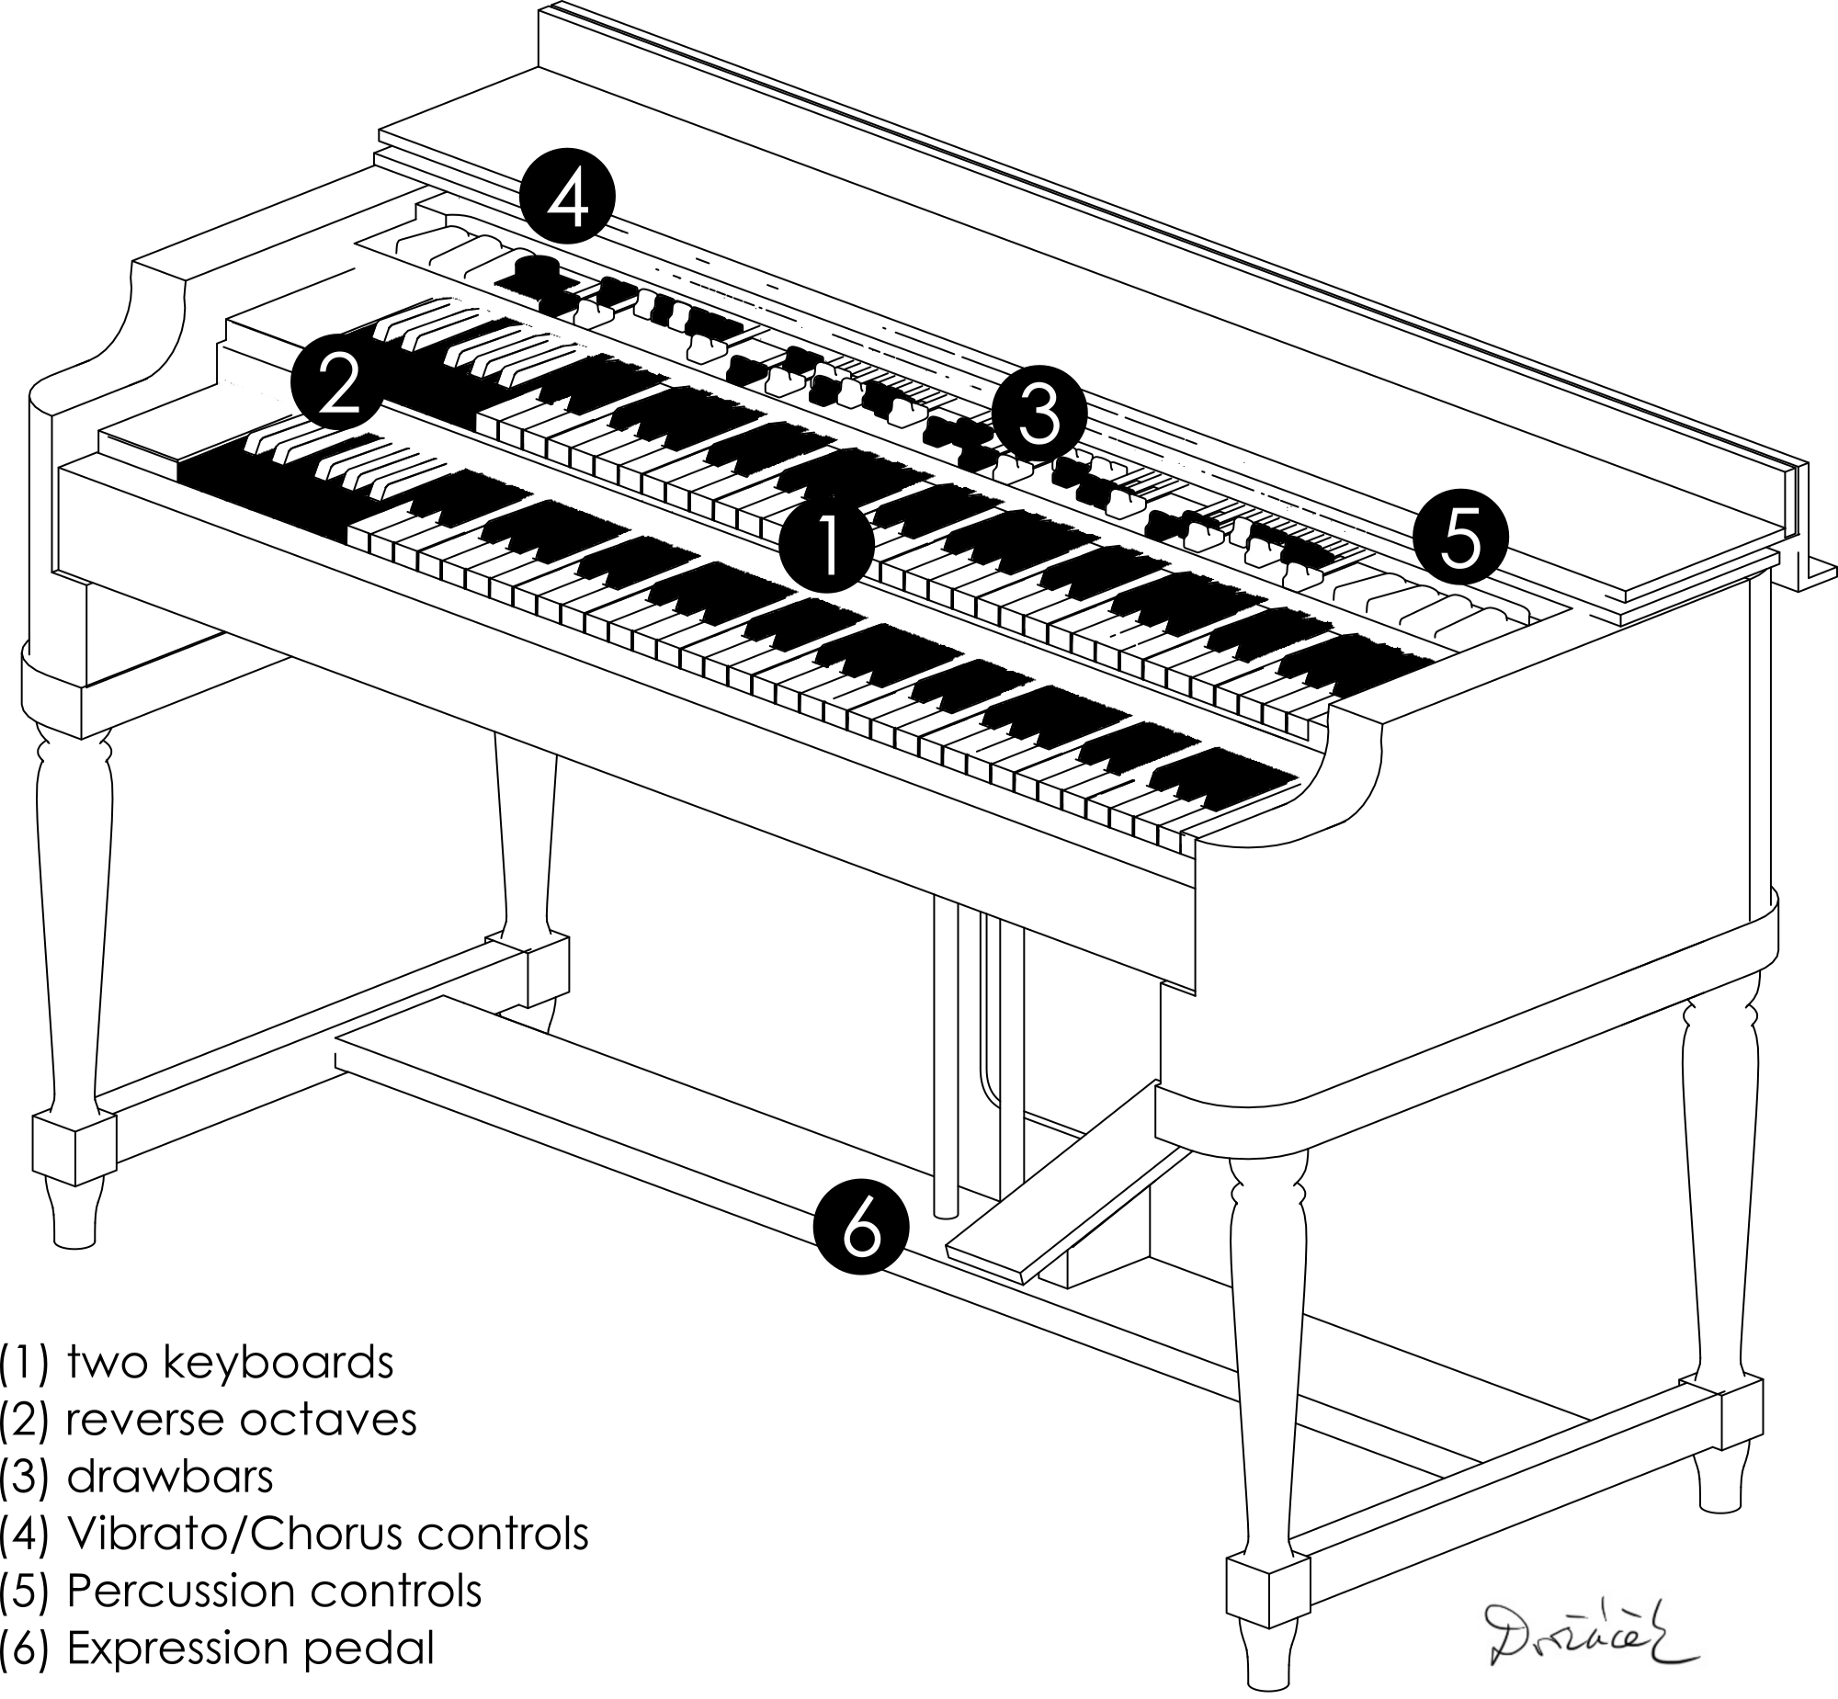 Design and realization of organ MIDI controller - Štěpán Dvořáček